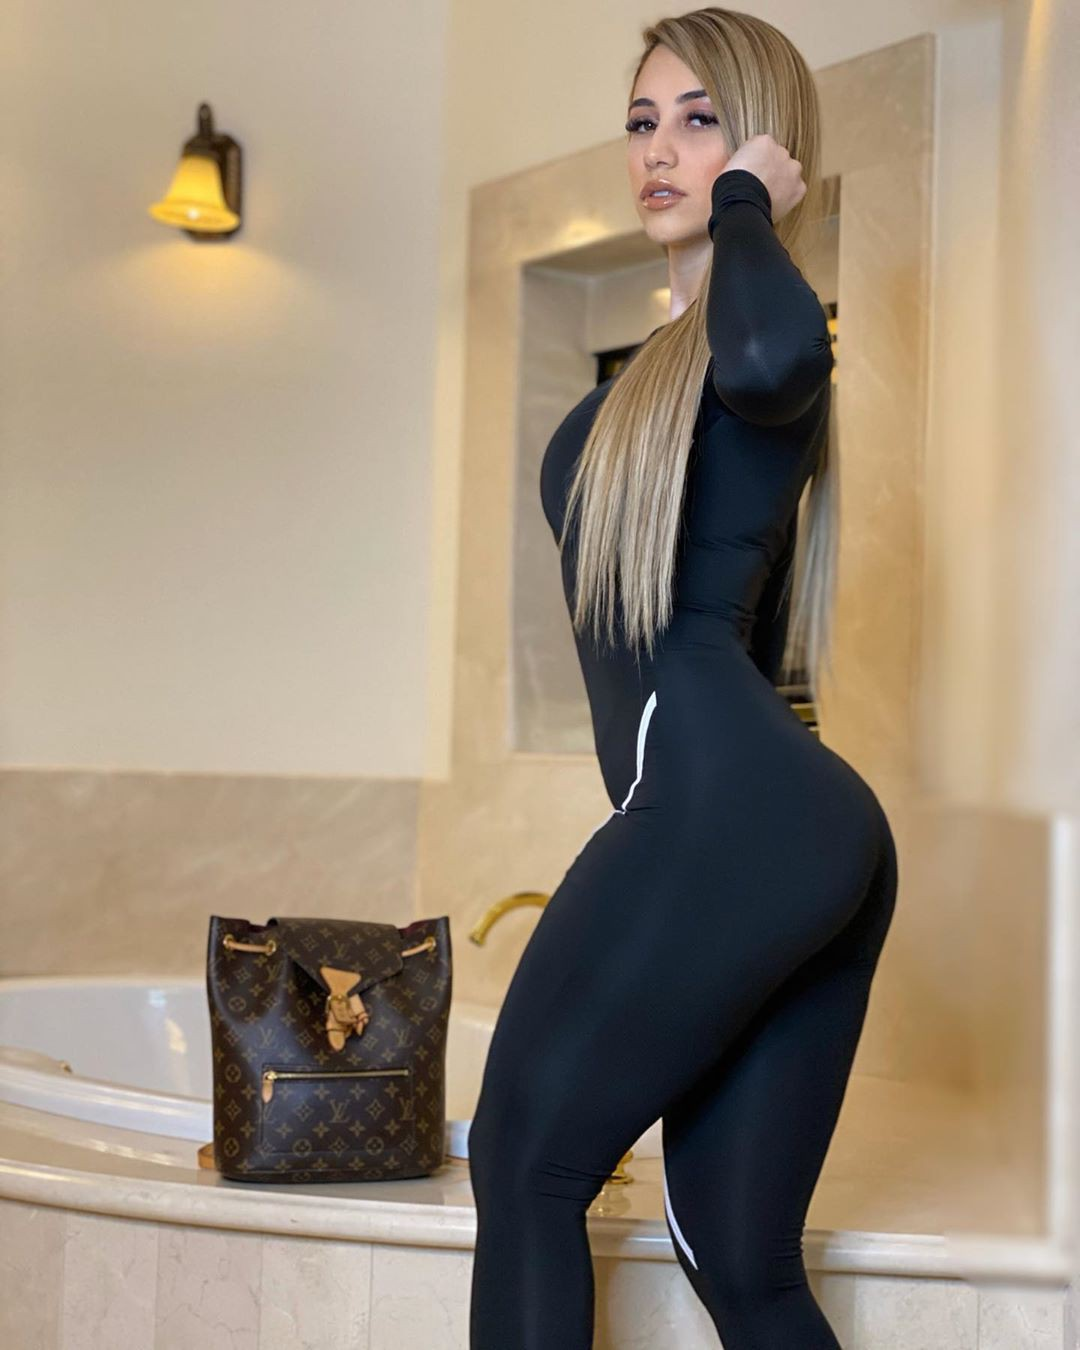 Mariam Olivera dress leggings, tights matching ideas for girls